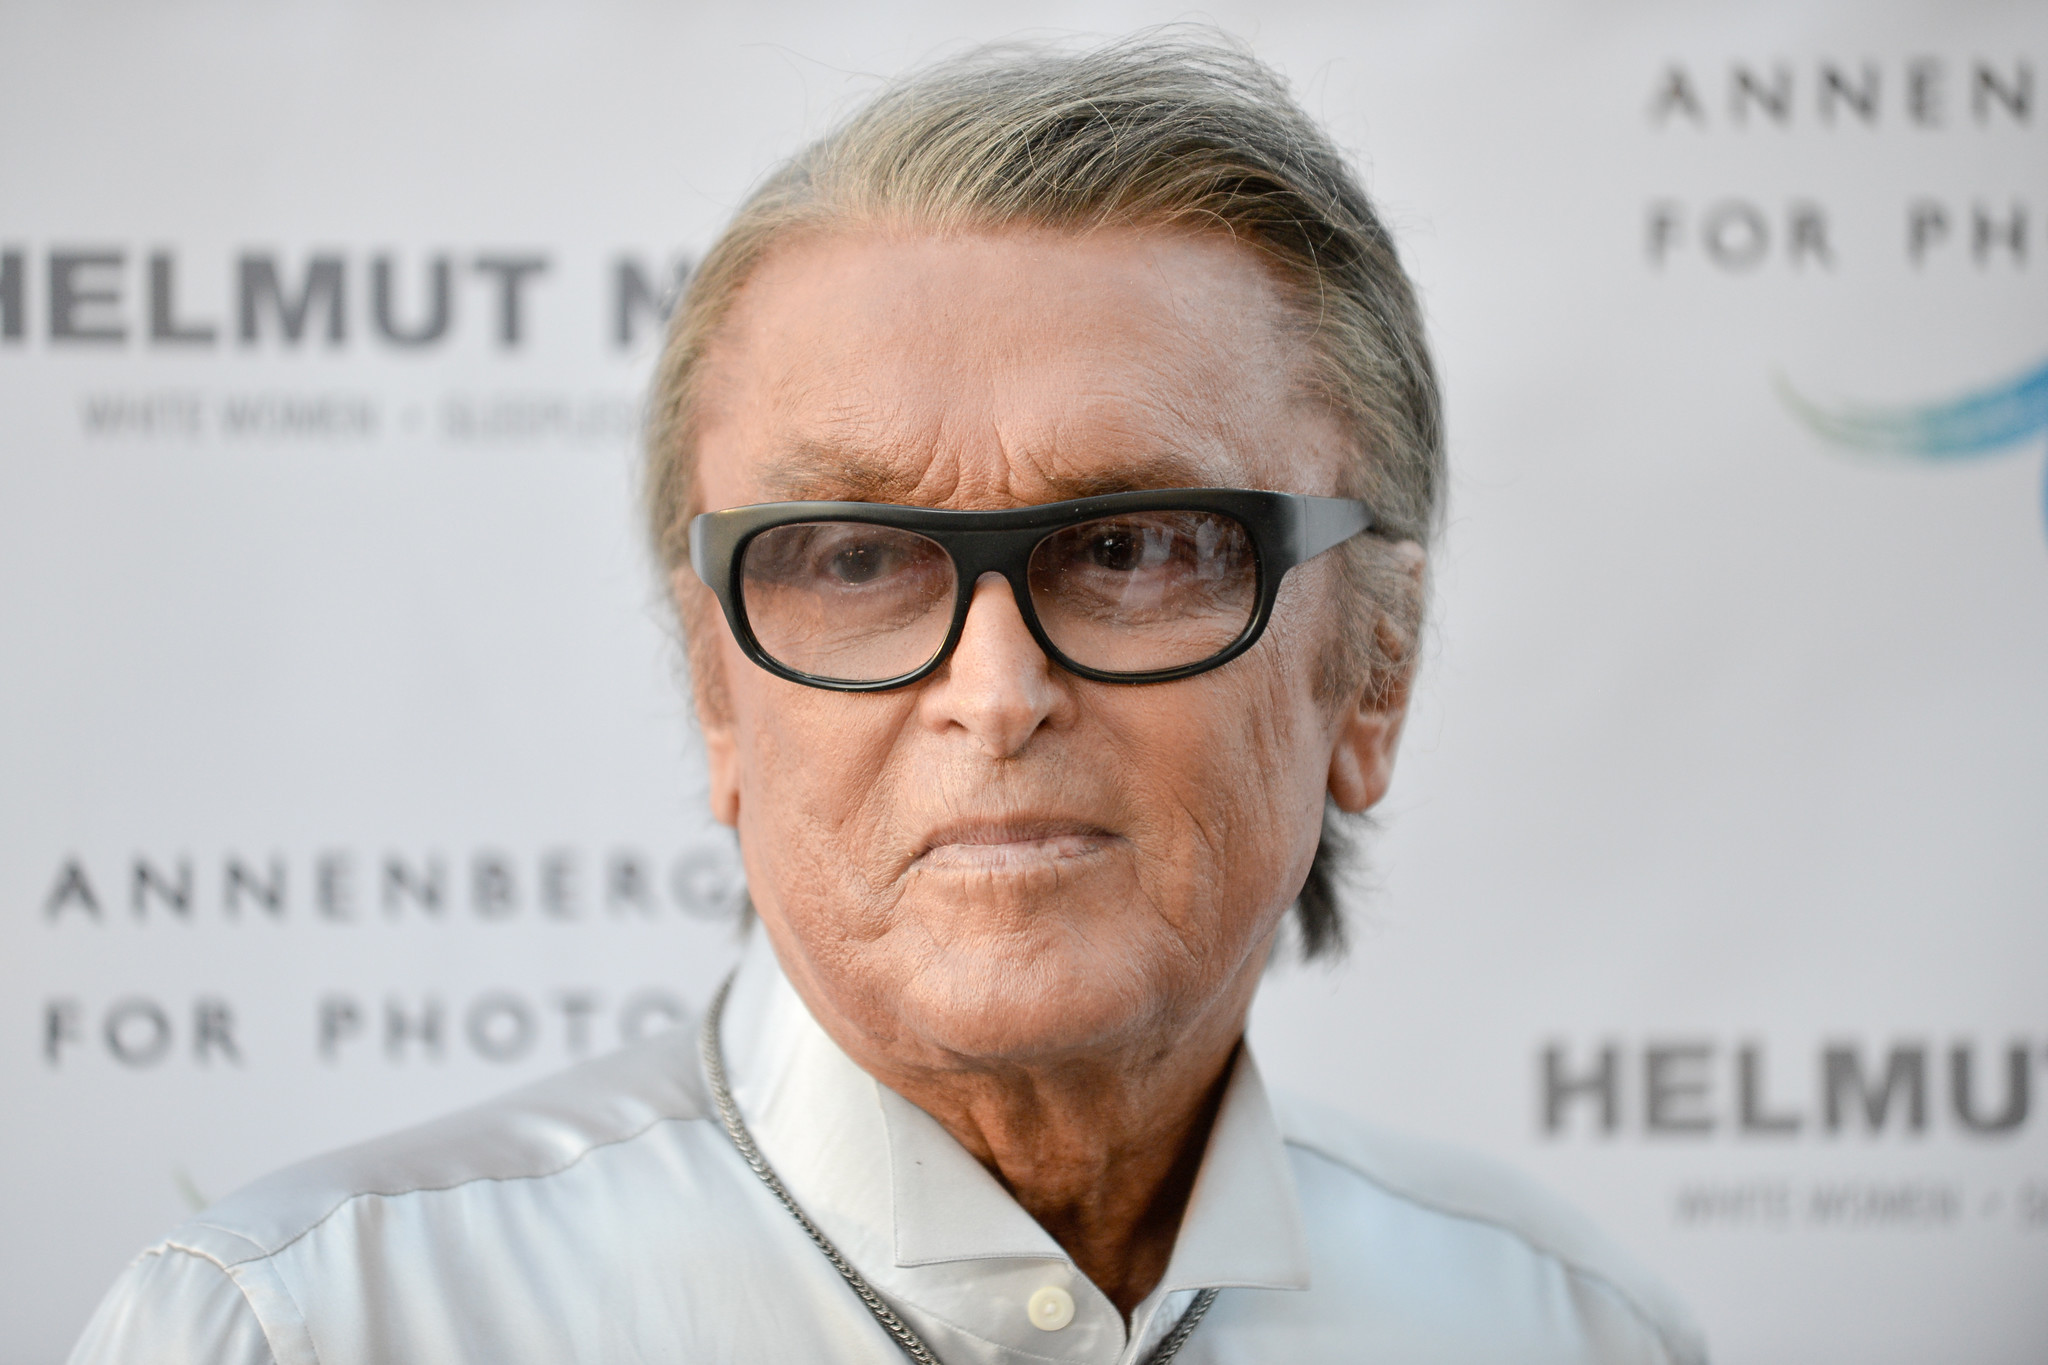 'Chinatown' producer and movie mogul Robert Evans is dead at 89